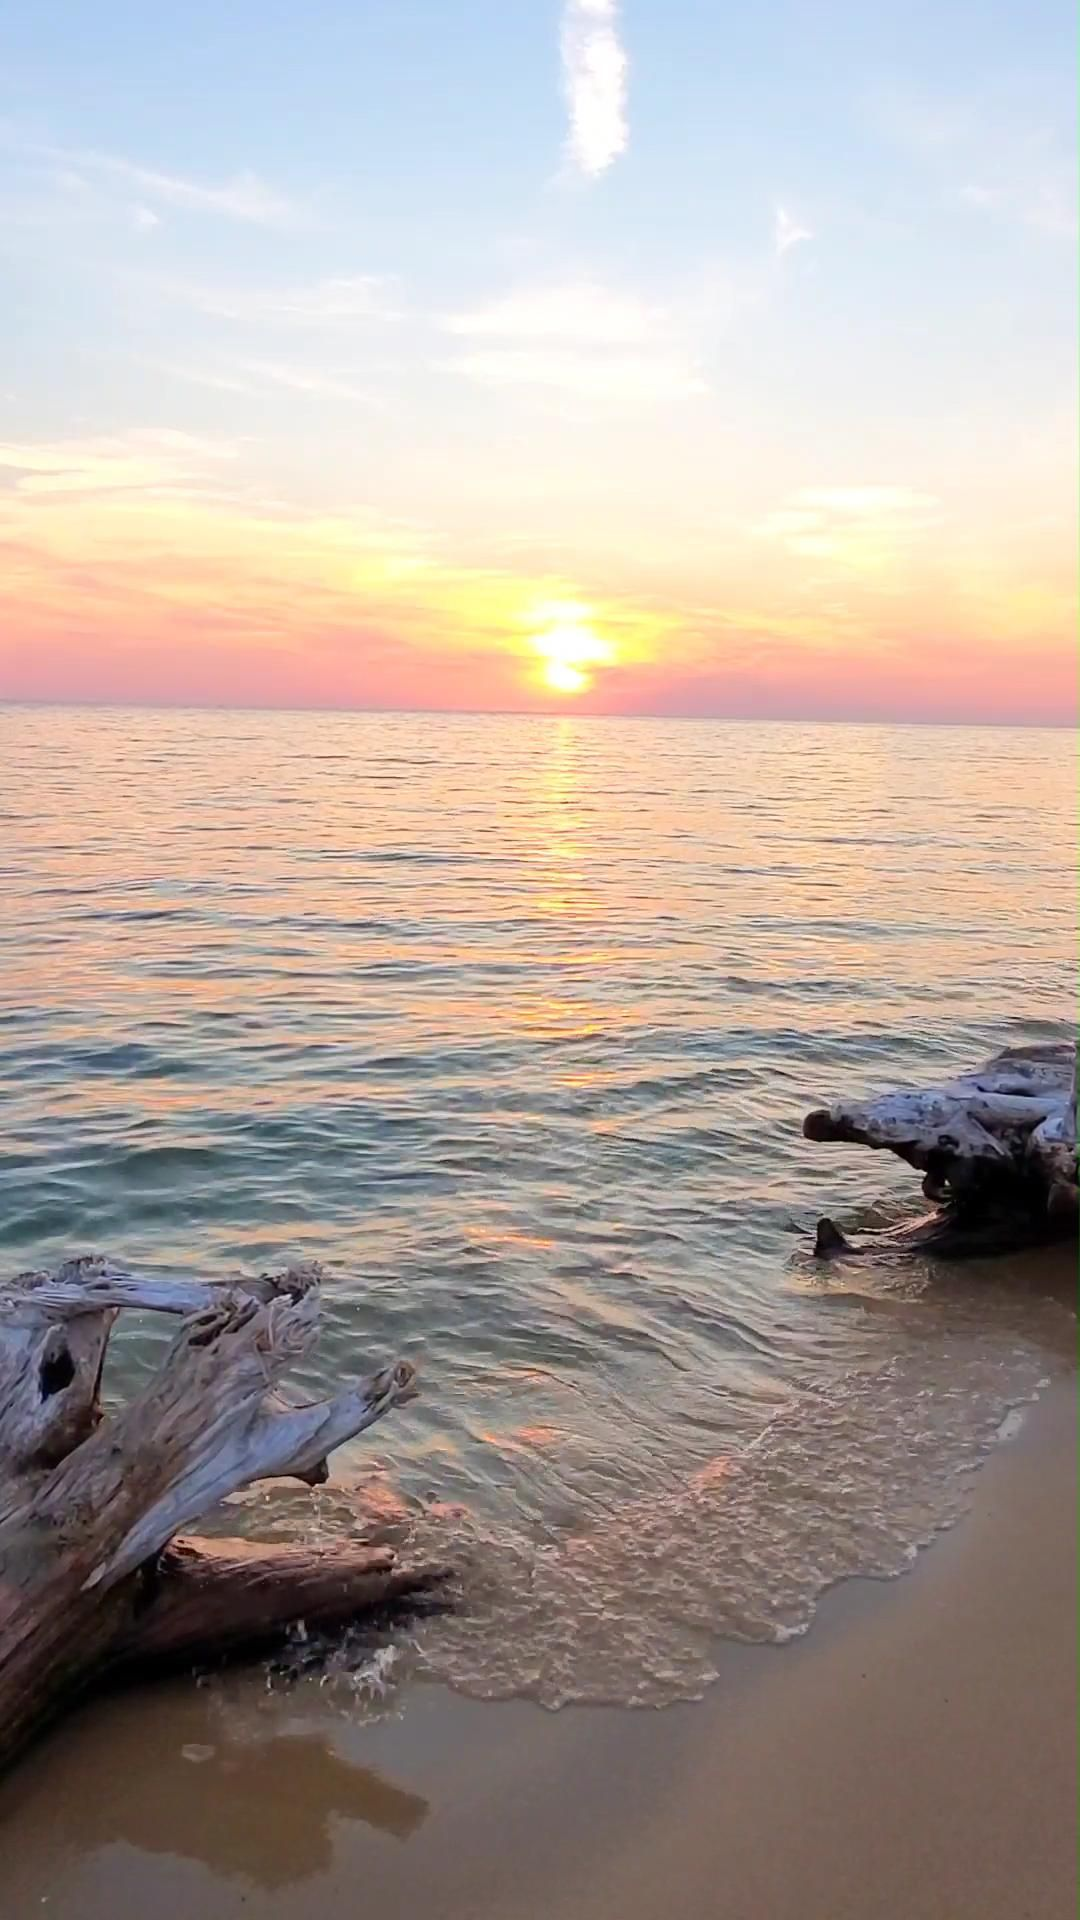 24 hours in a Michigan state park with perfect sunset - summer vacation ideas